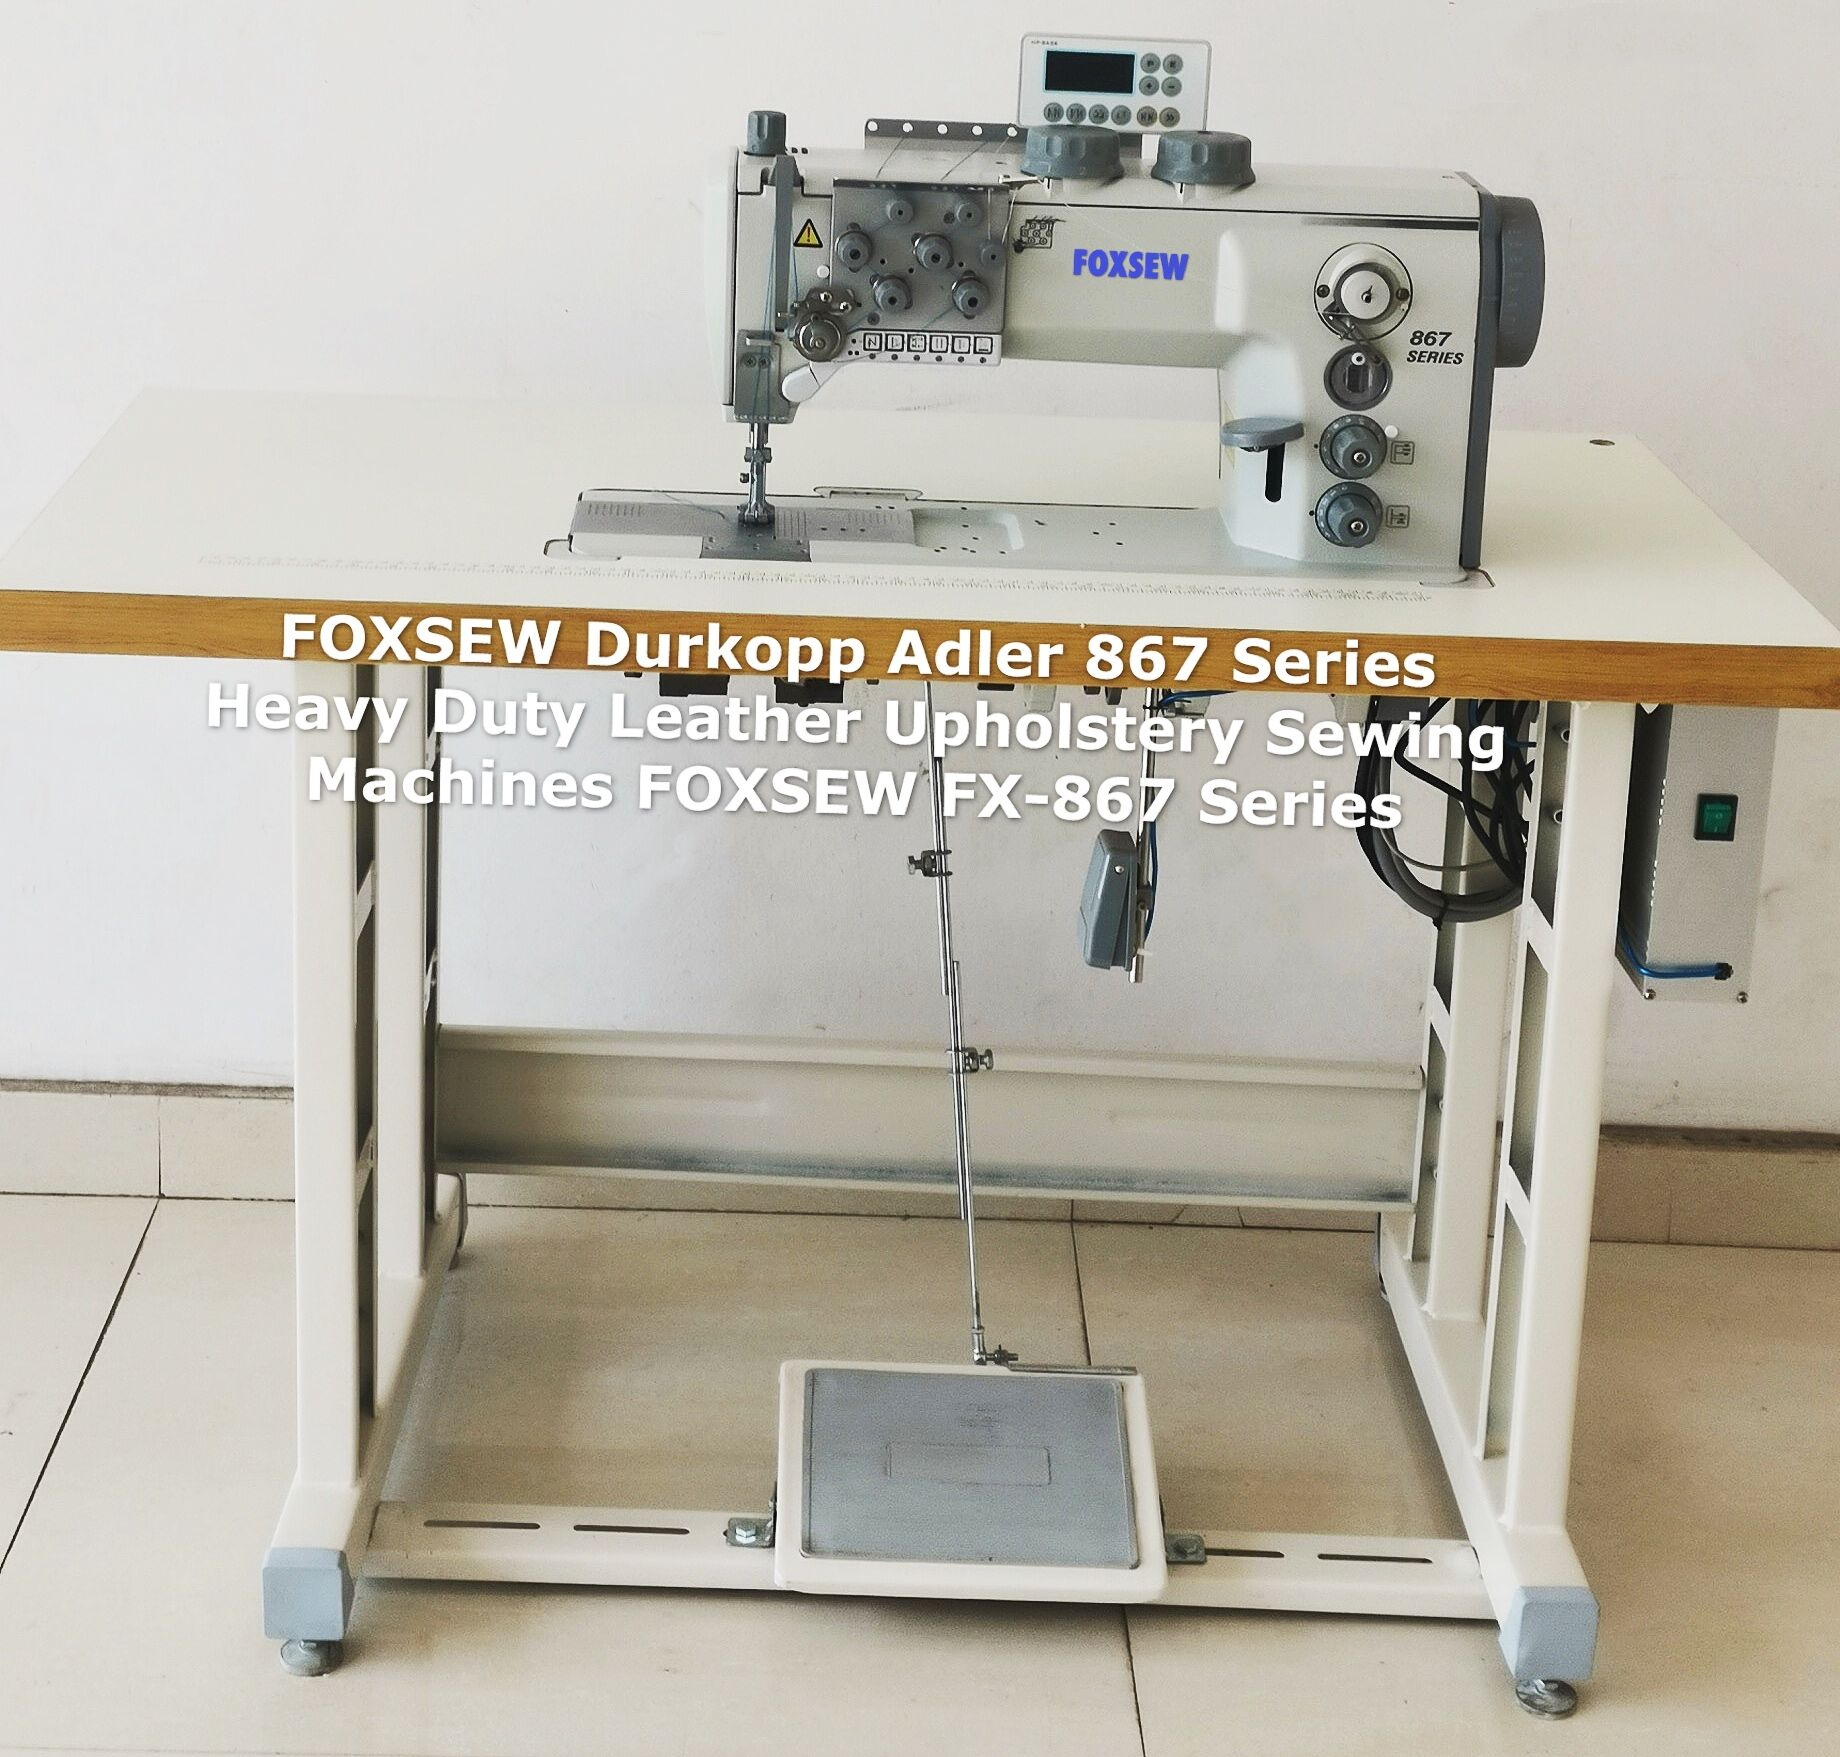 FOXSEW FX-867 Series Machine -1